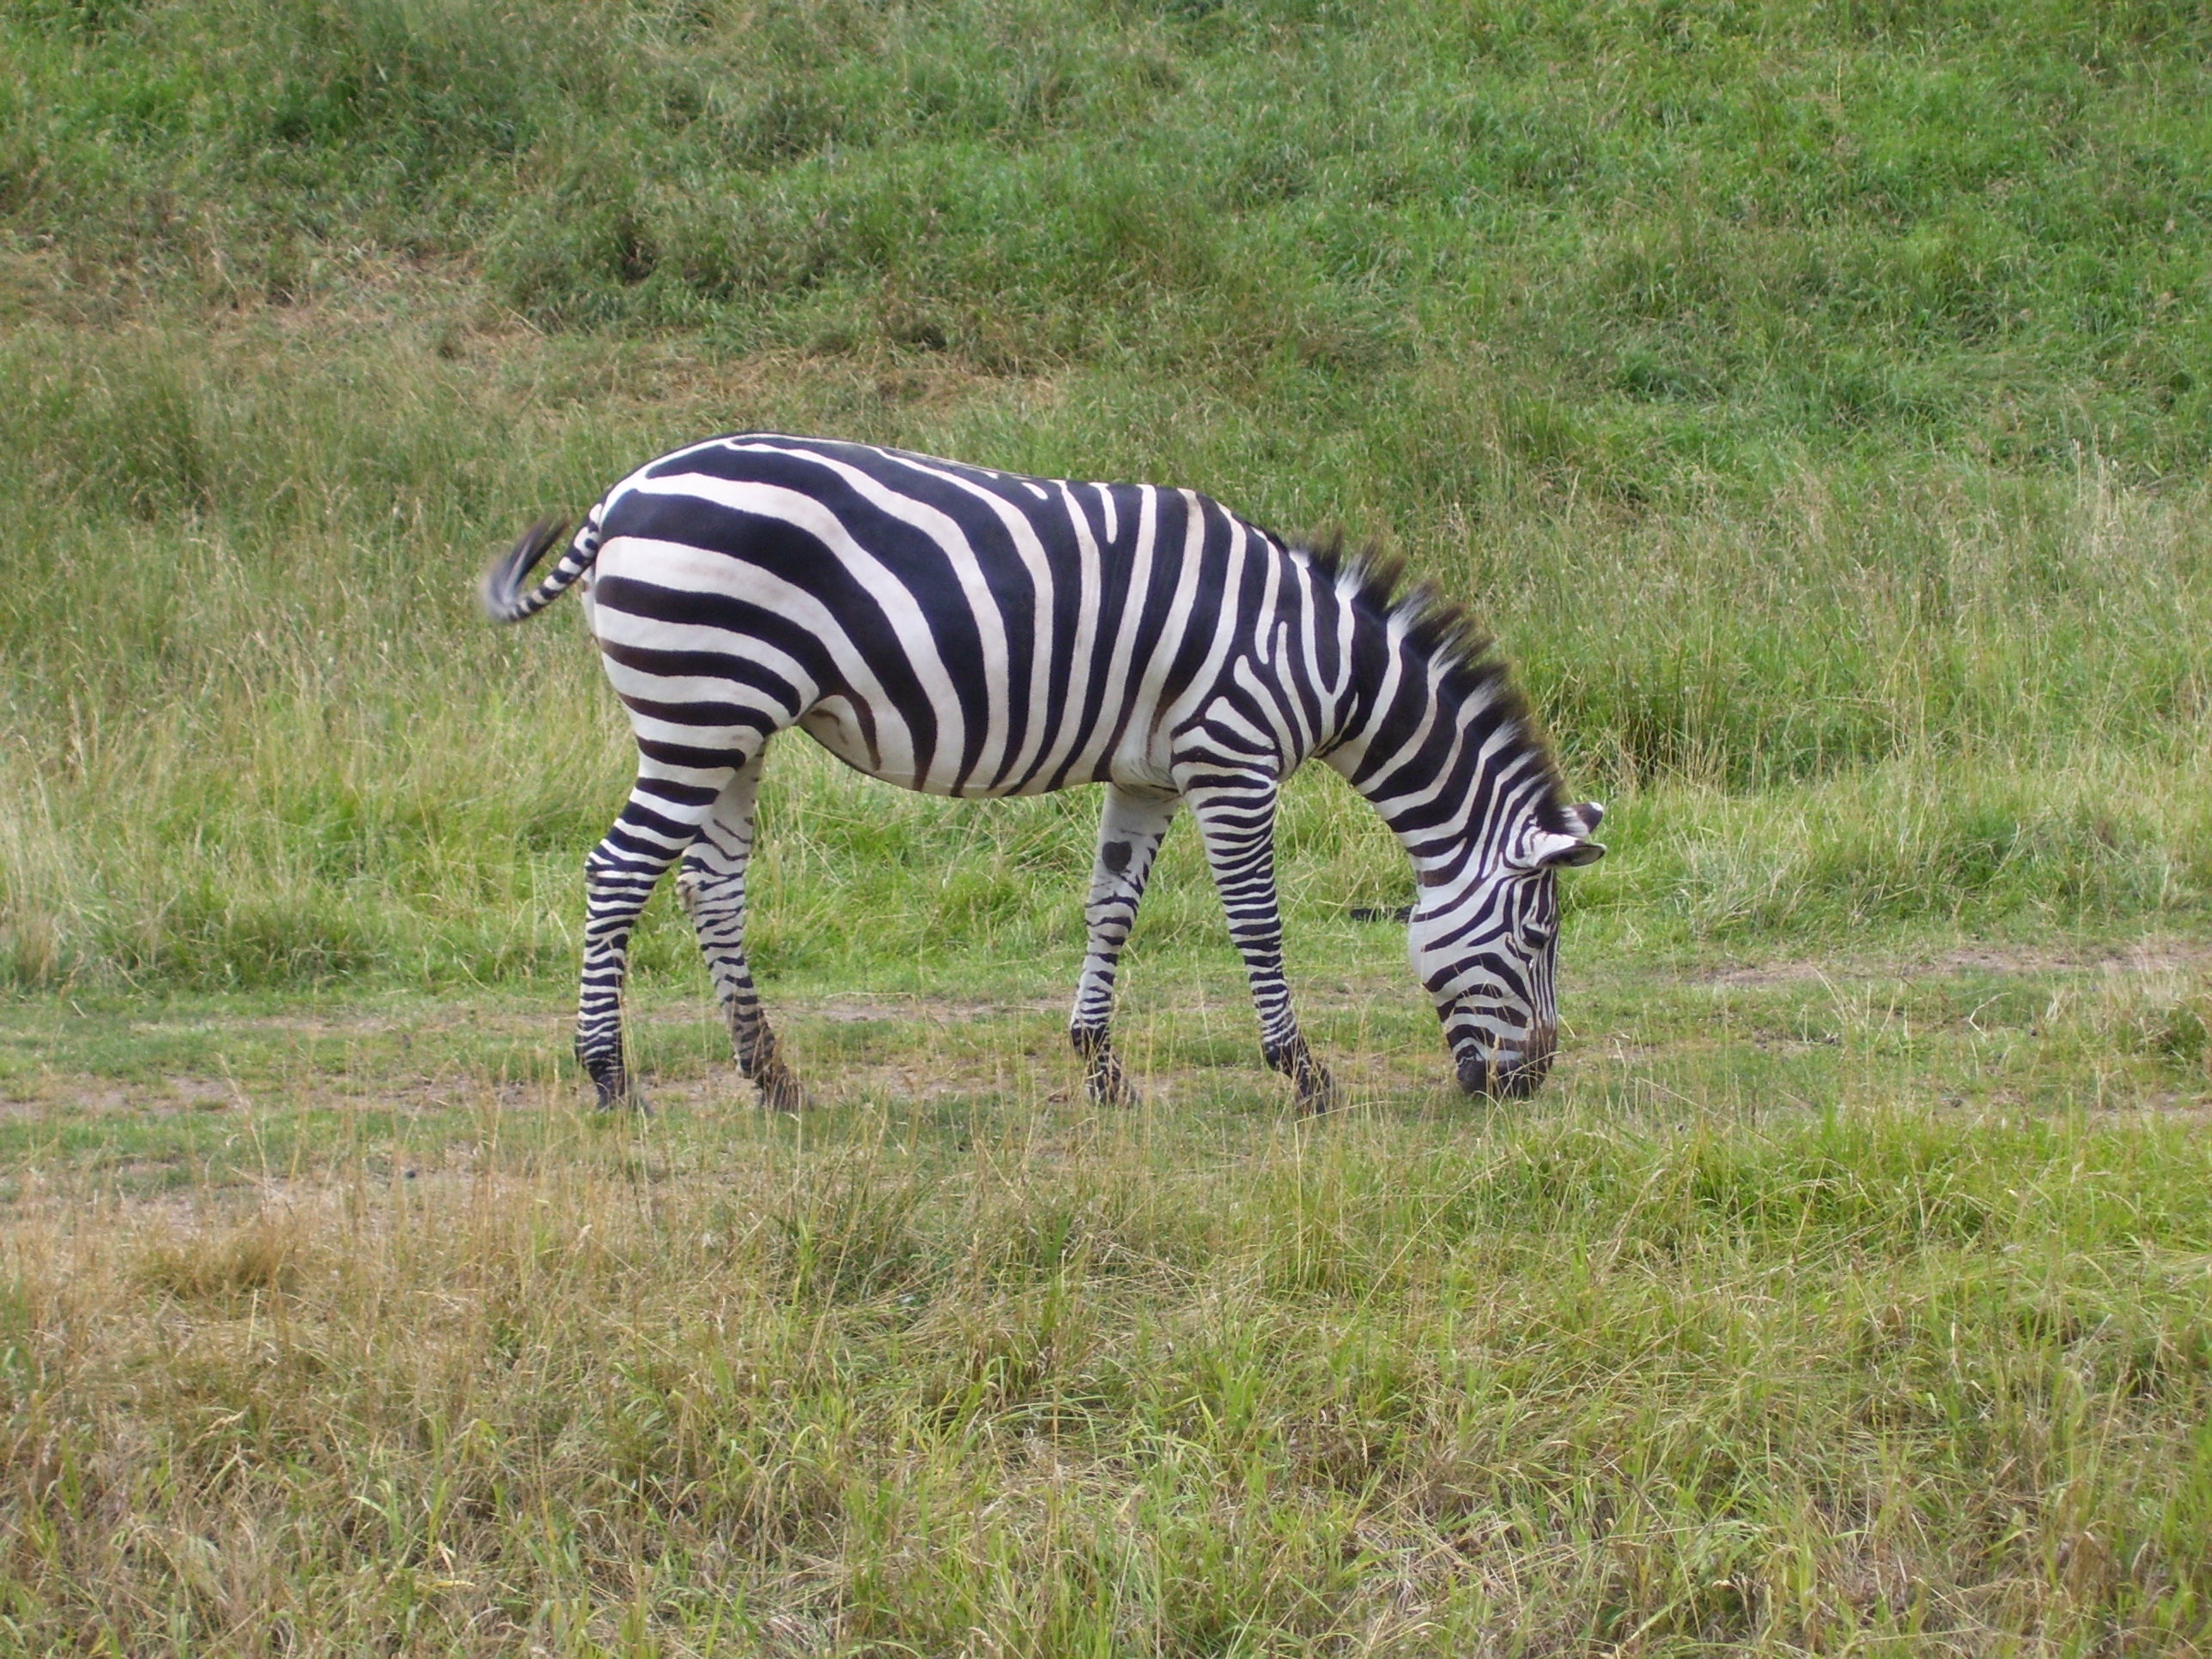 http://upload.wikimedia.org/wikipedia/commons/e/ef/Plains_Zebra.jpg